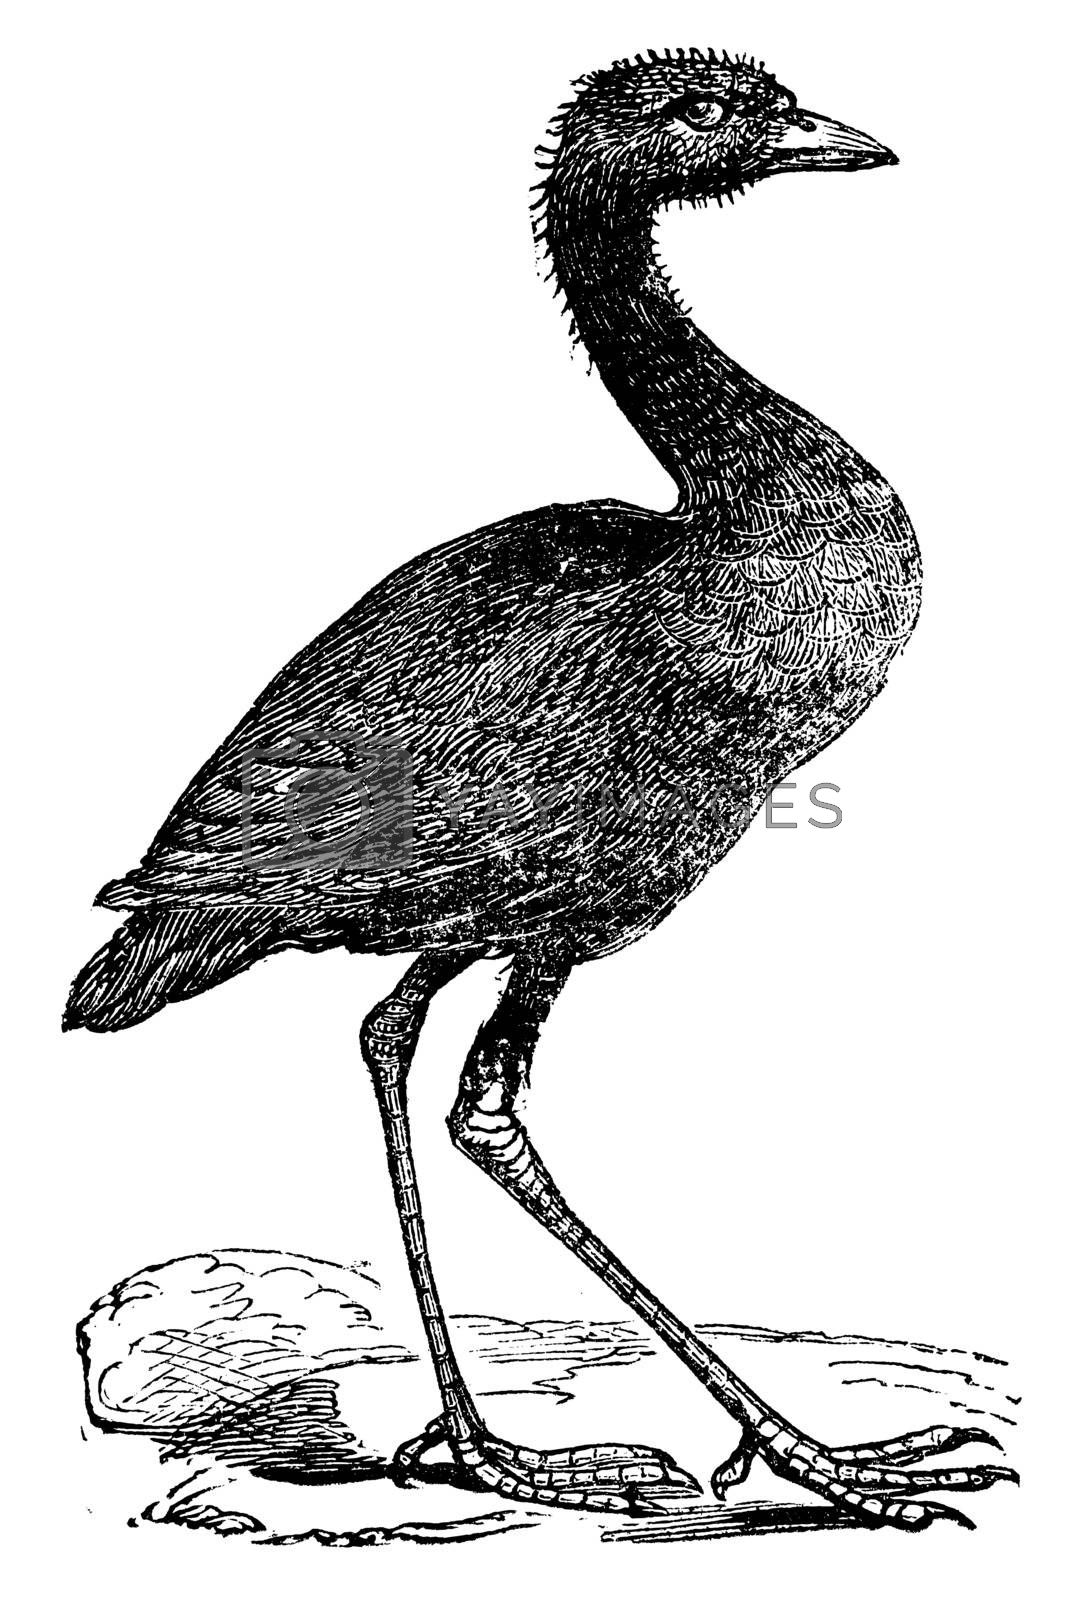 Grey-winged trumpeter or Psophia crepitans vintage engraving. Old engraved illustration of a grey-winged trumpeter watching. From the family of Psophiidae.